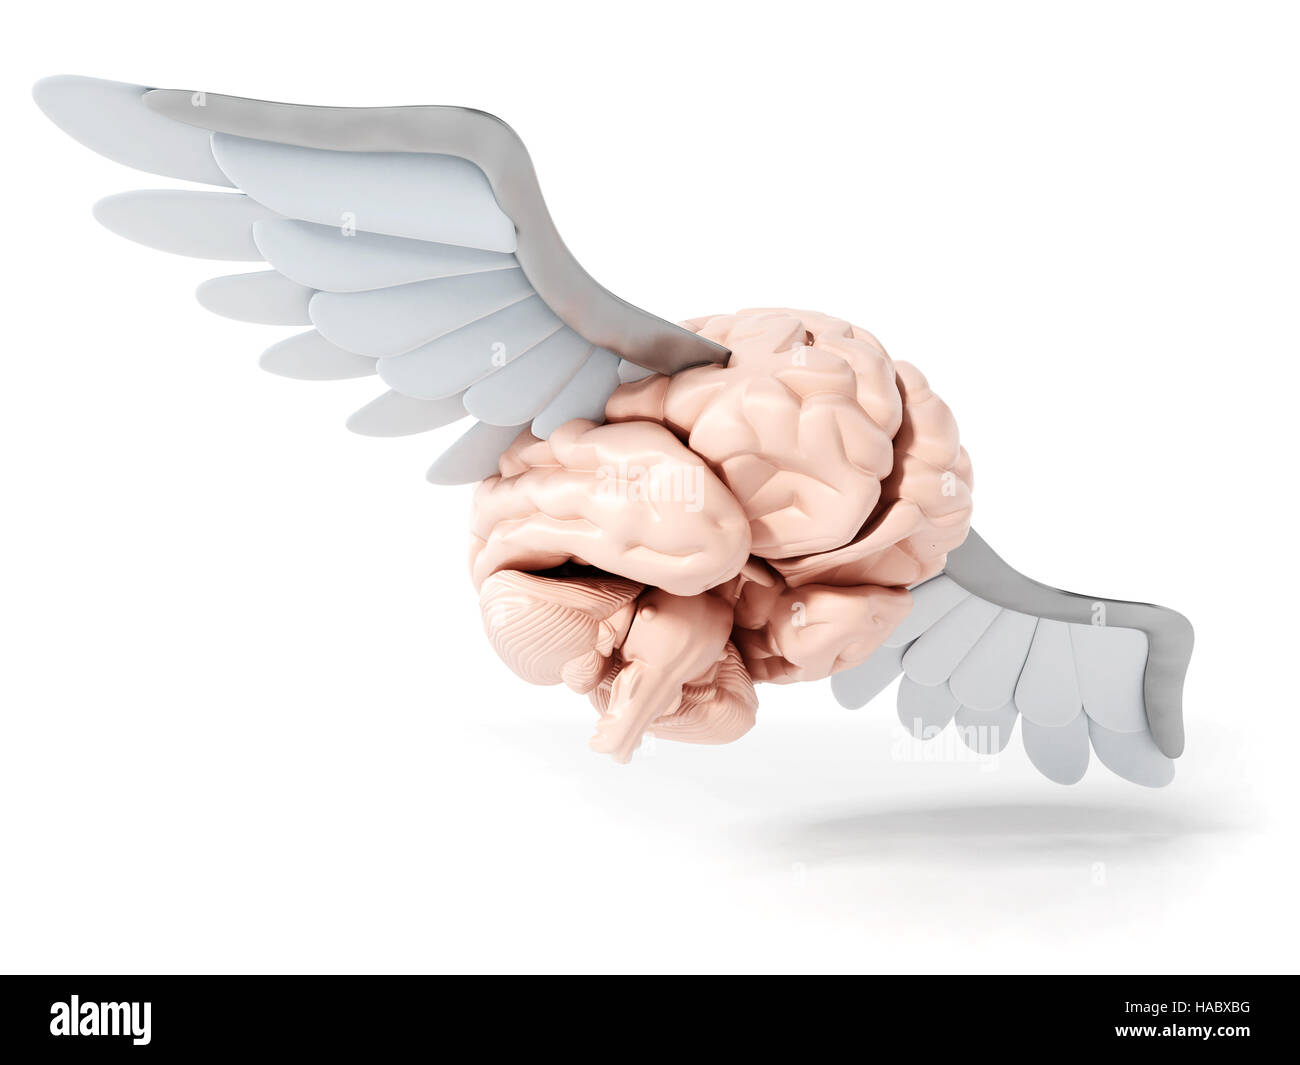 Flying brain with white wings. 3D illustration. - Stock Image